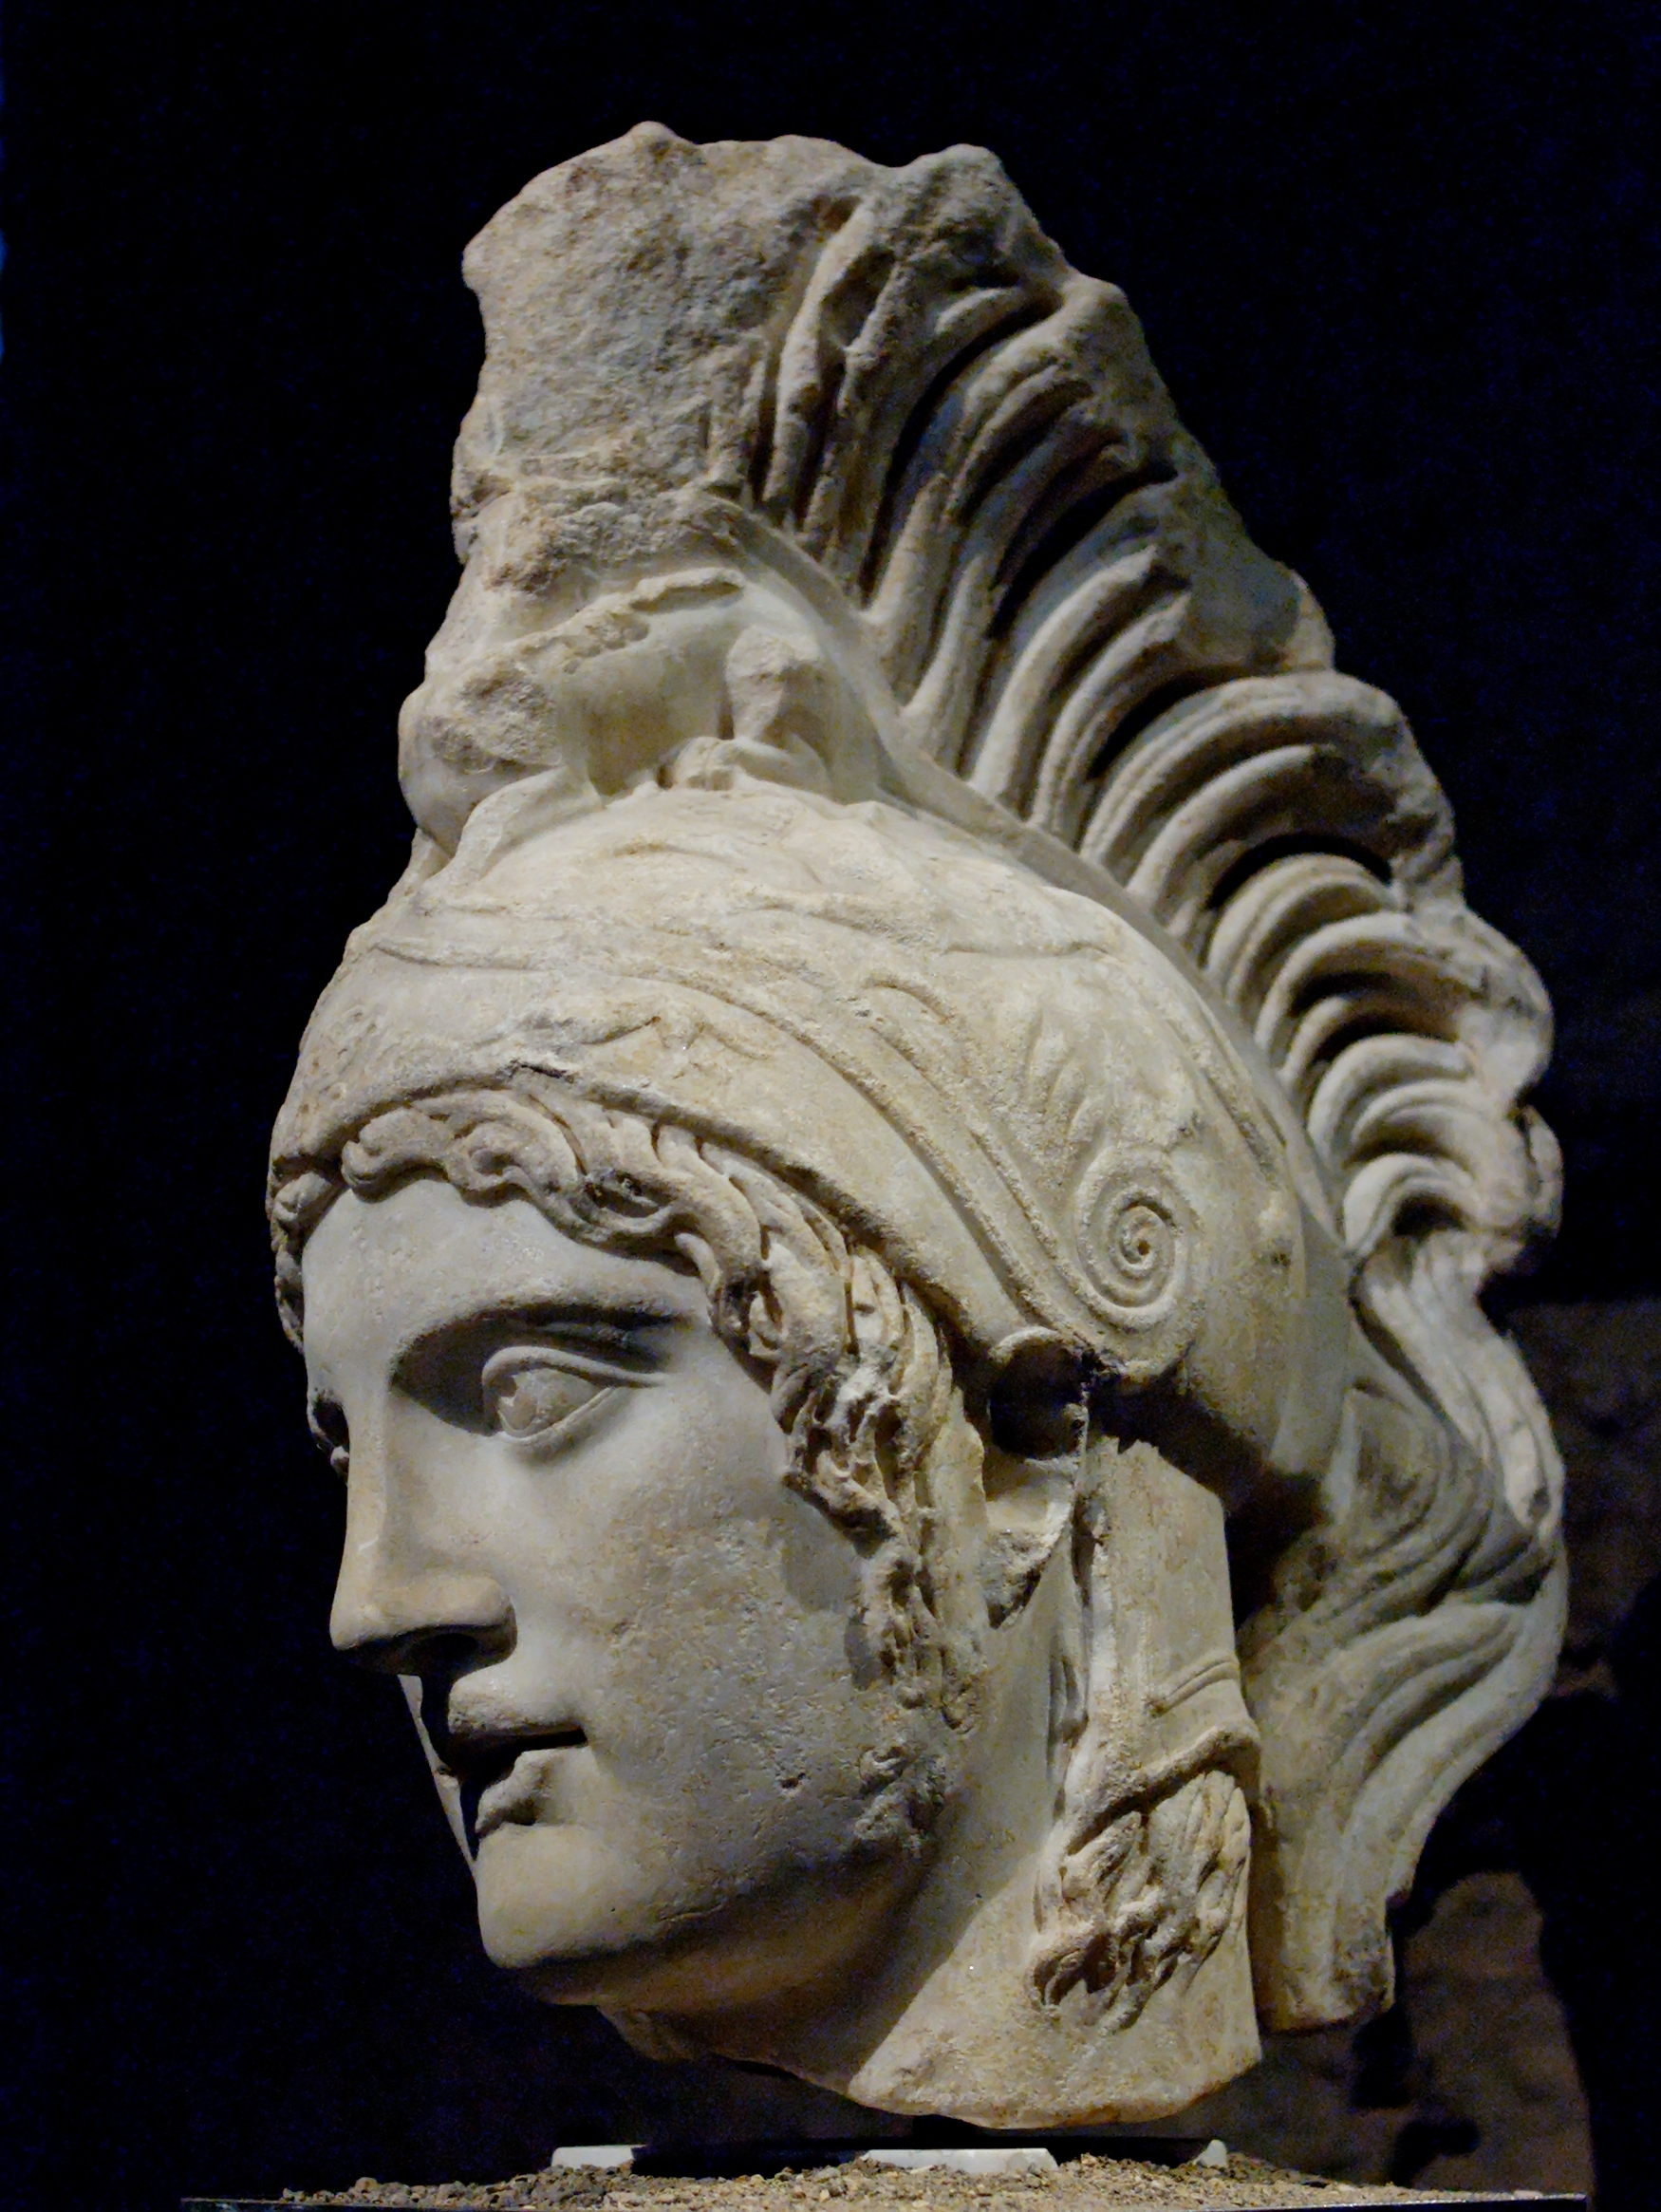 http://upload.wikimedia.org/wikipedia/commons/e/e7/Ares_Argentina_Montemartini.jpg